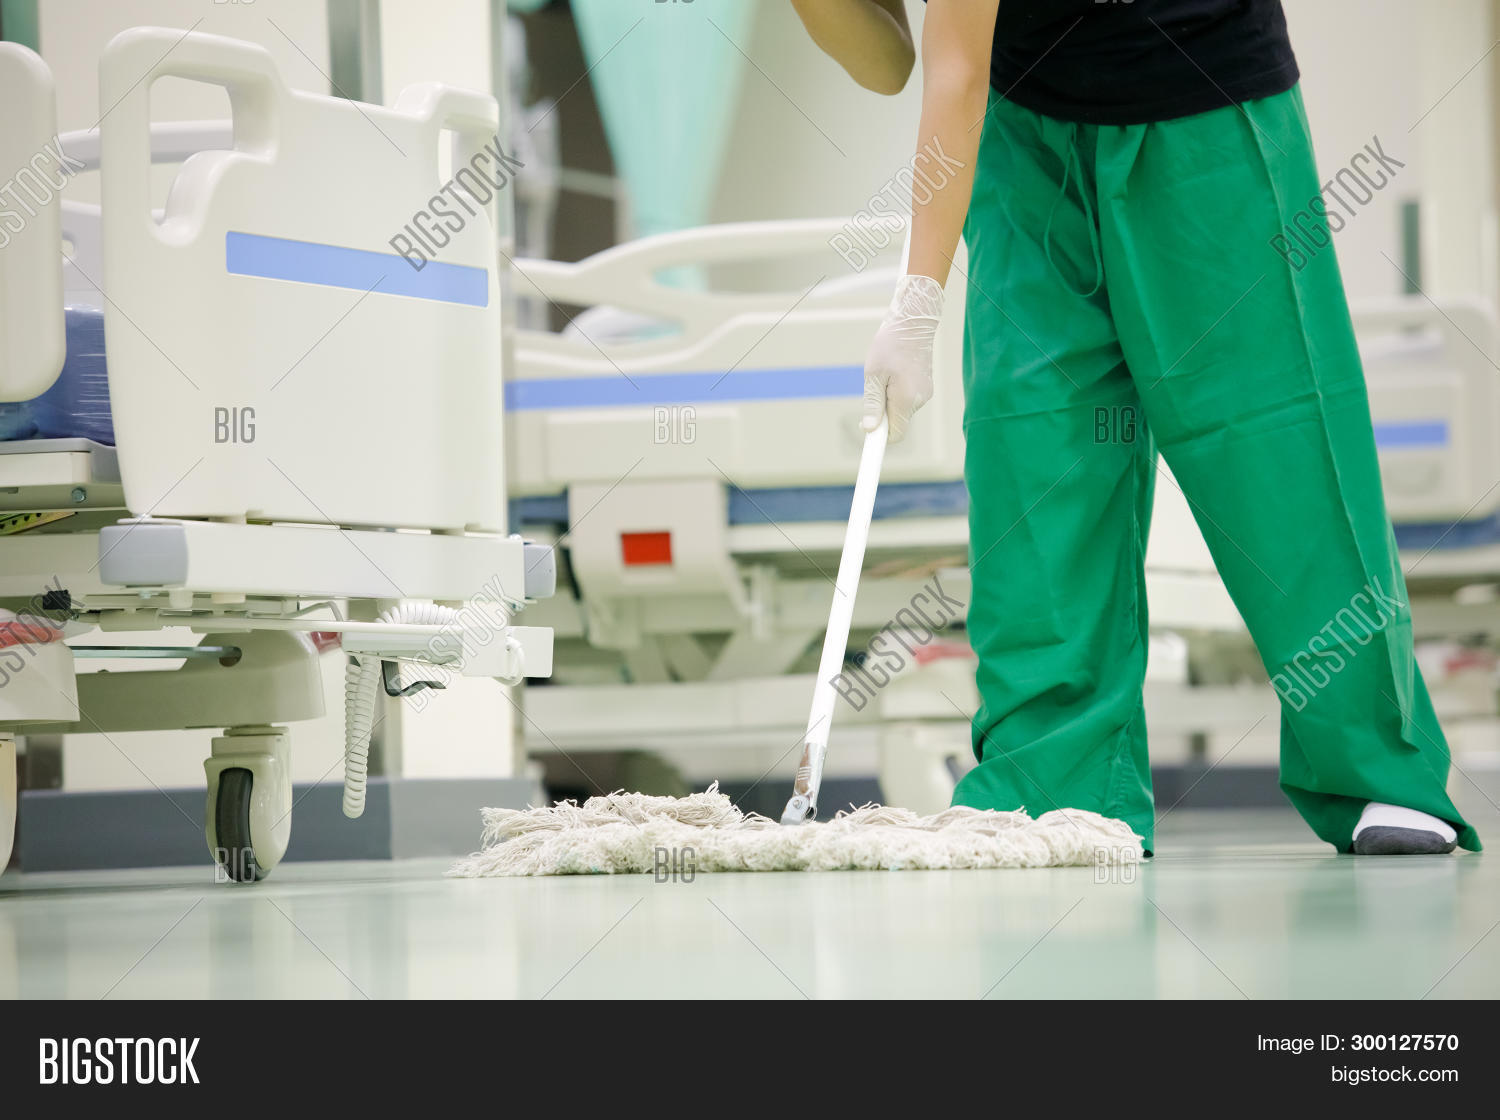 adult,bed,bioclean,bucket,building,business,care,caucasian,charwoman,chores,clean,cleaner,cleaning,cleanness,clinic,corridor,dust,equipment,factory,female,floor,girl,hall,hospital,industrial,job,lady,lifestyle,maid,maintenance,medical,mop,occupation,pass,passage,people,person,purity,rag,room,routine,service,sterile,uniform,washer,washing,white,woman,work,worker